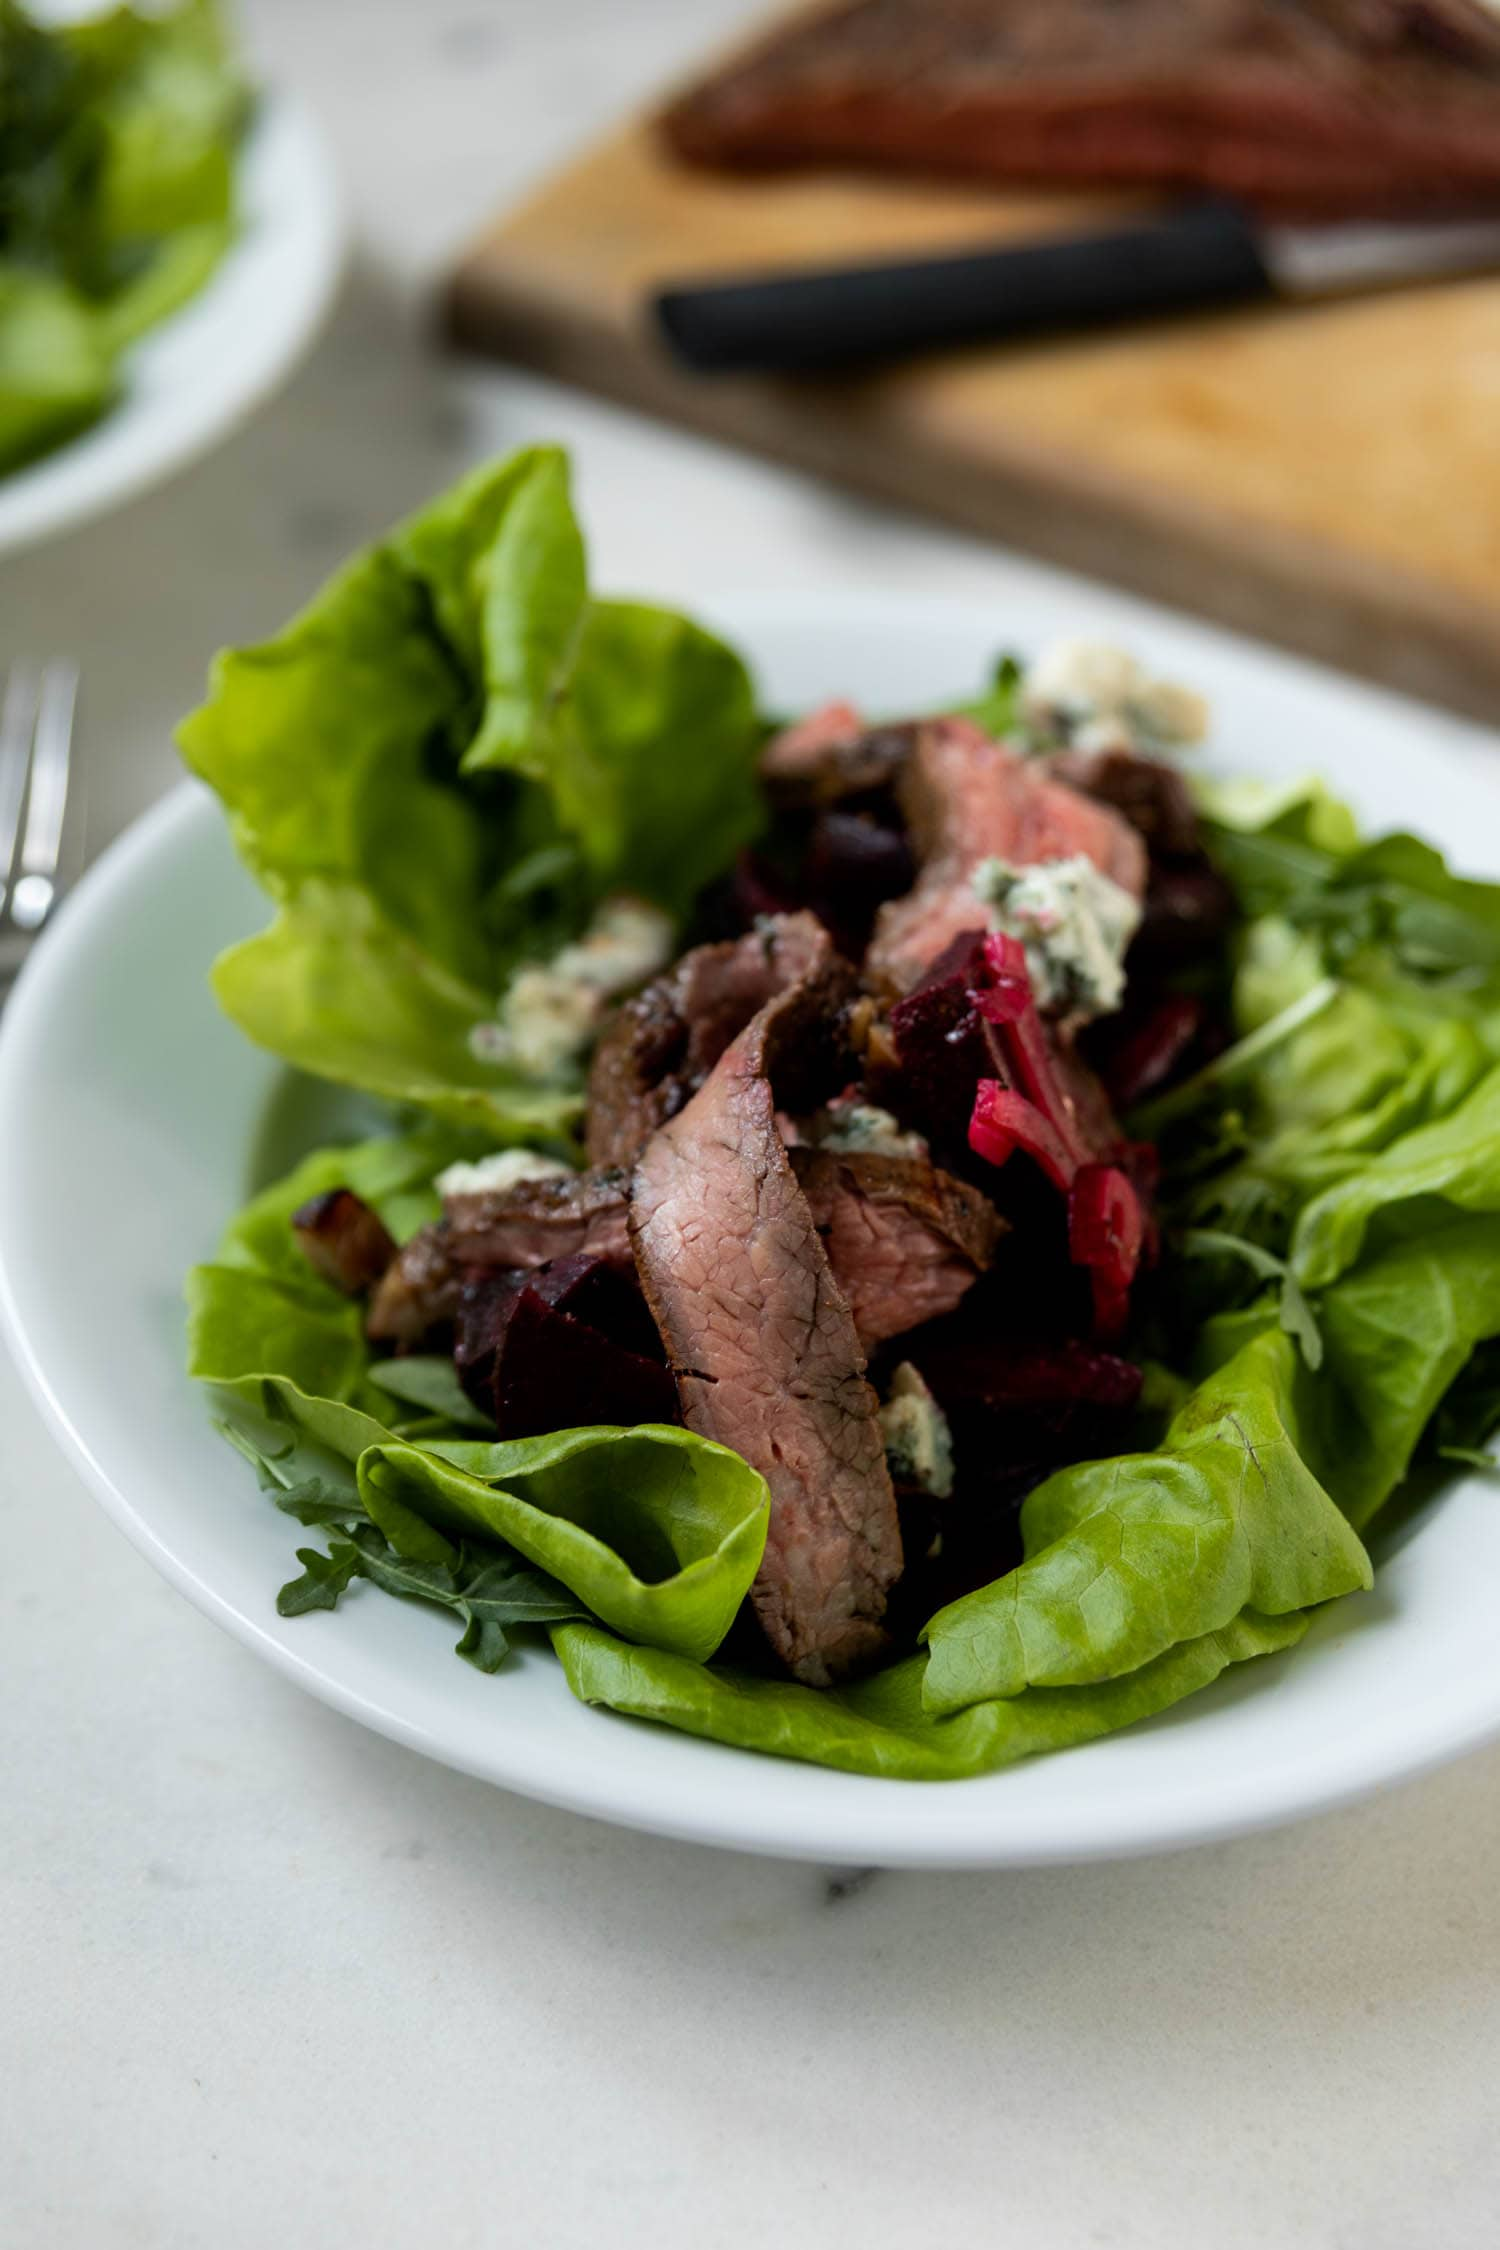 Butter lettuce and arugula topped with grilled flank steak, grilled beets and feta on a white plate with steak, cutting board and knife in background on a marble surface.